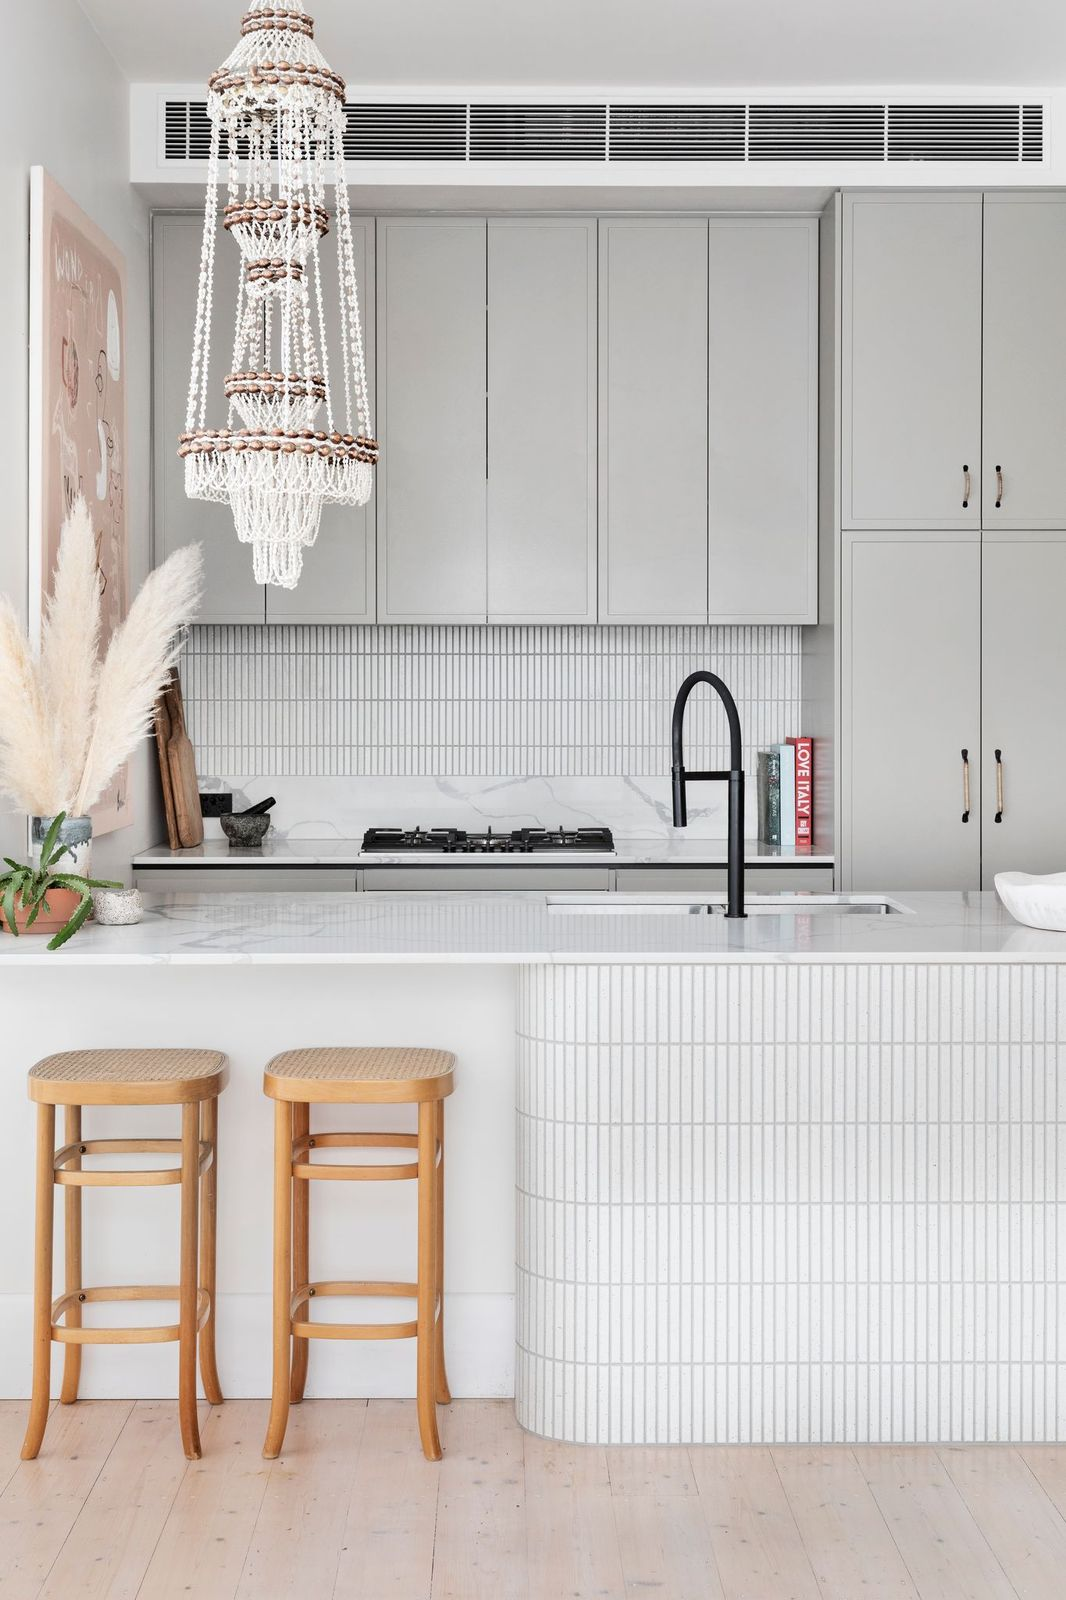 White kitchen with tiled curved bench